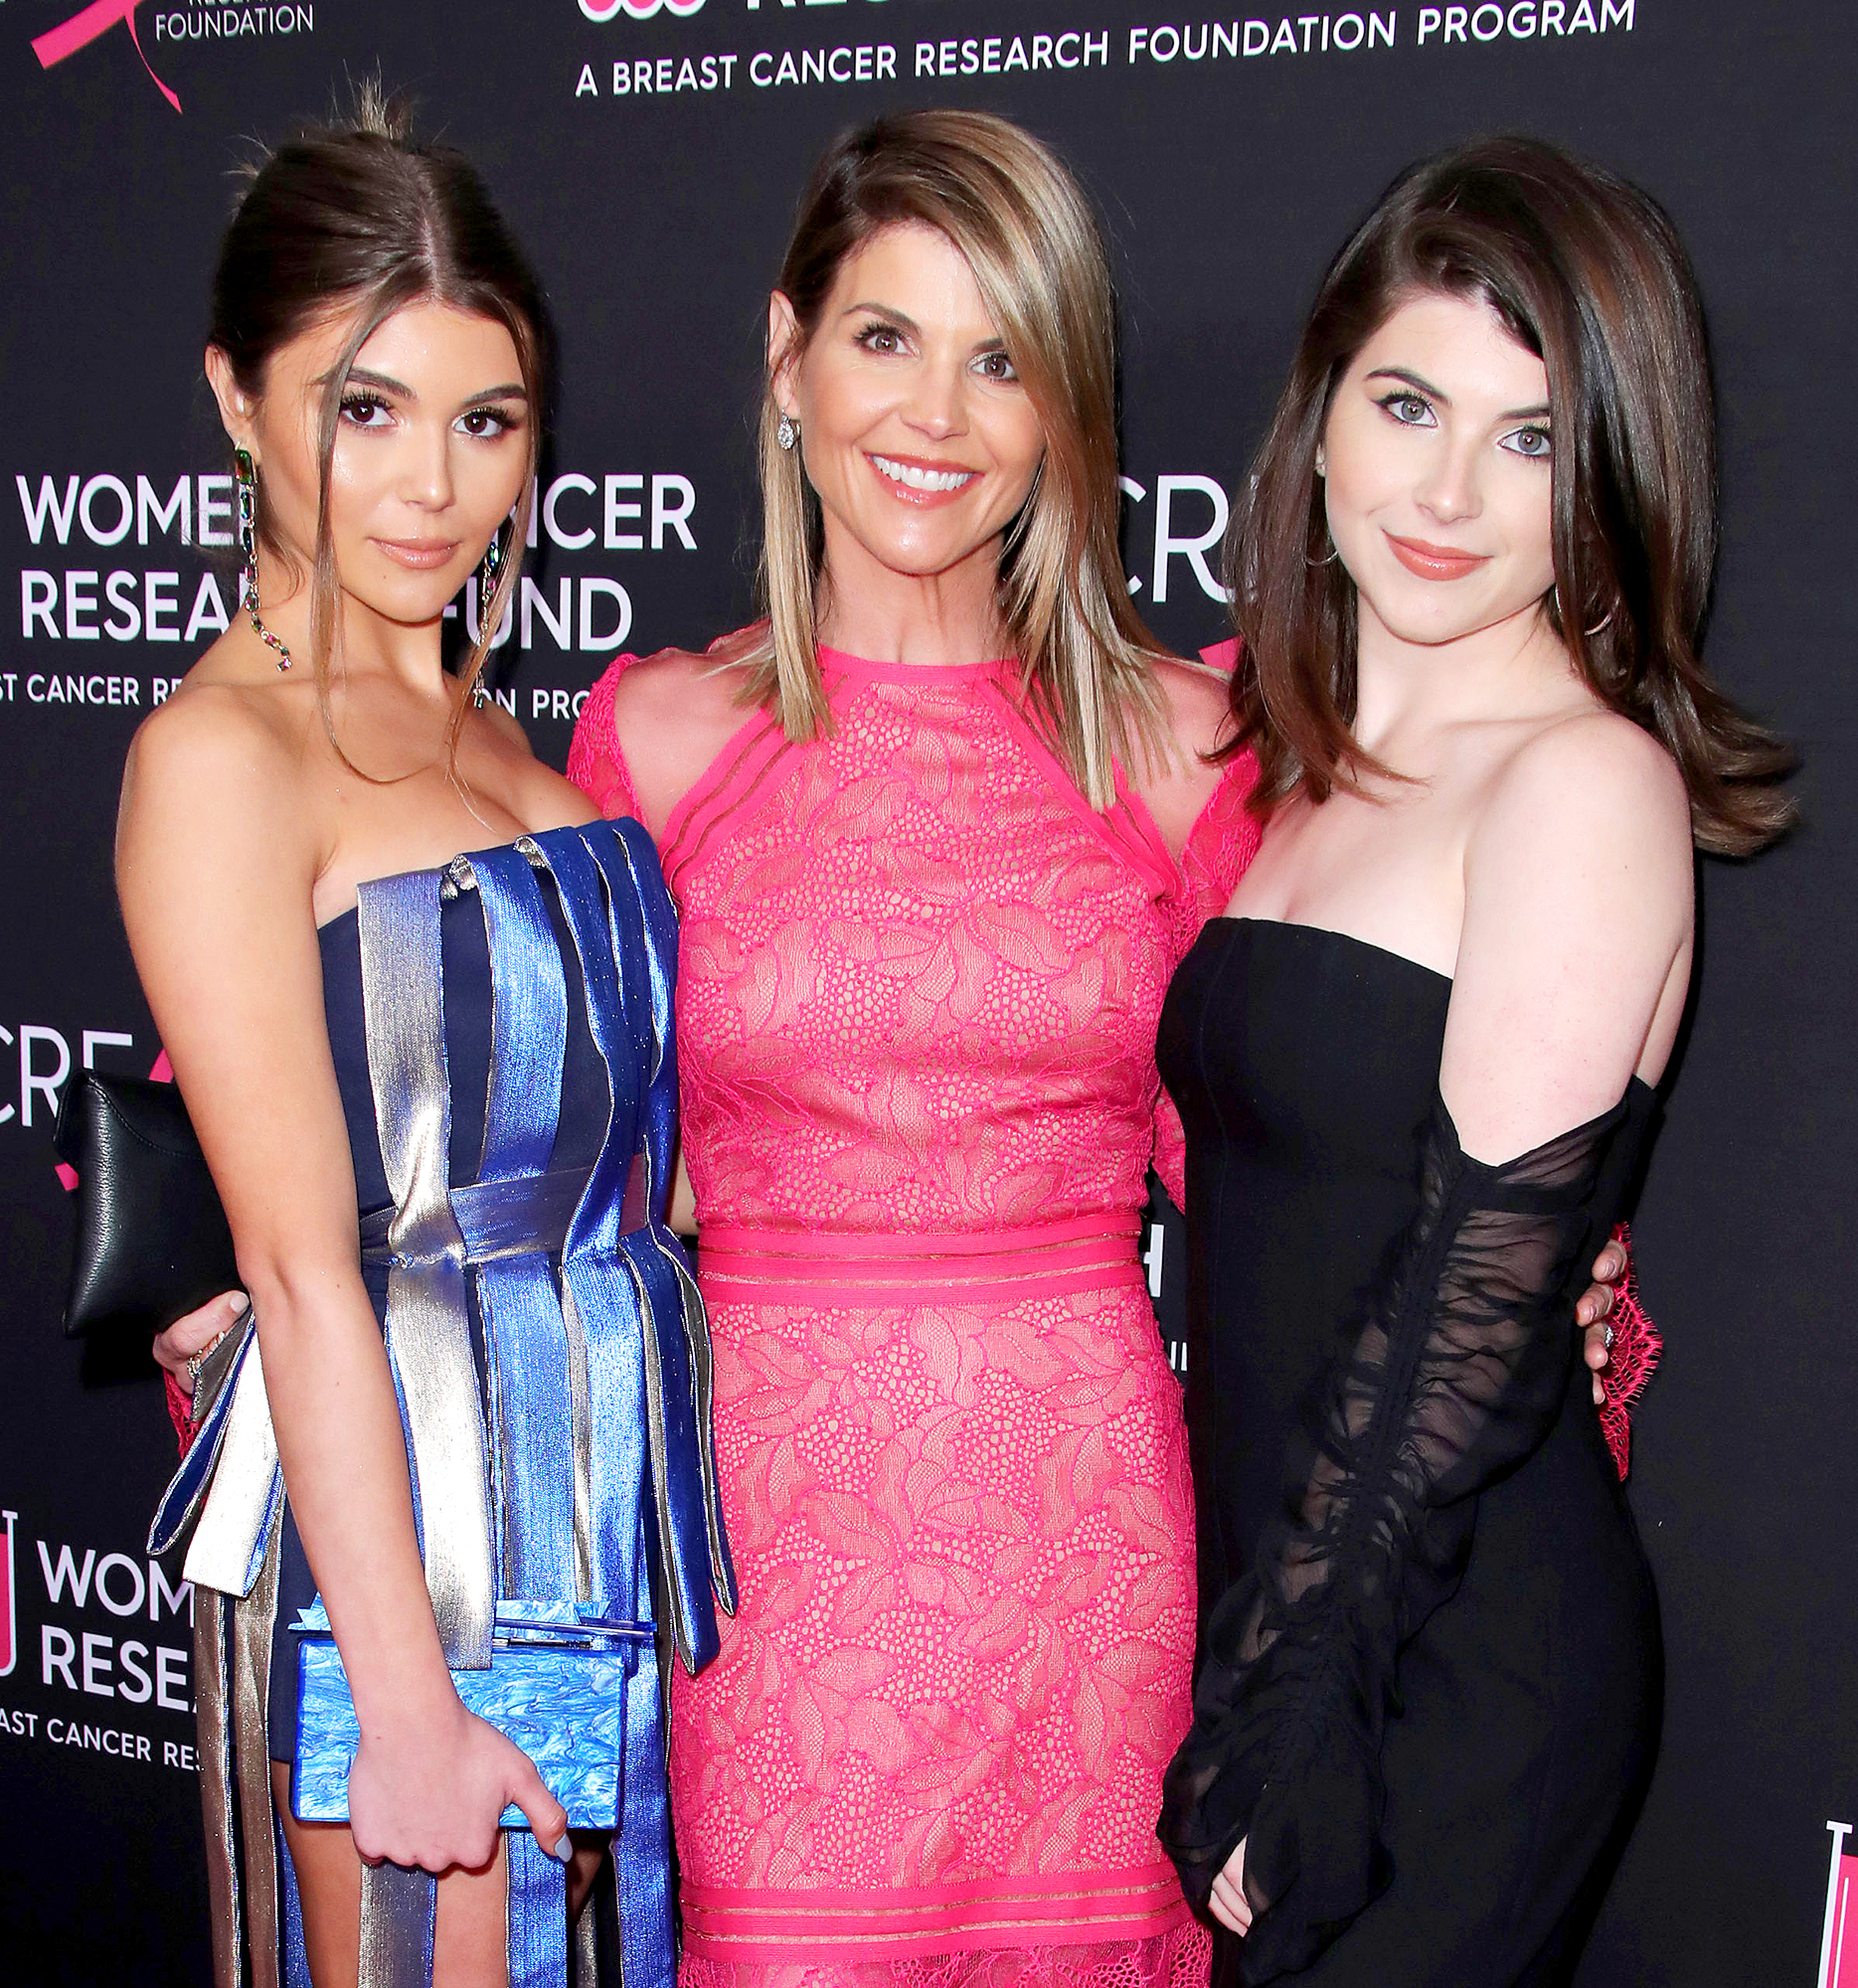 Lori-Loughlin-Is-'Devastated'-Over-How-Scandal-Has-Affected-Daughters